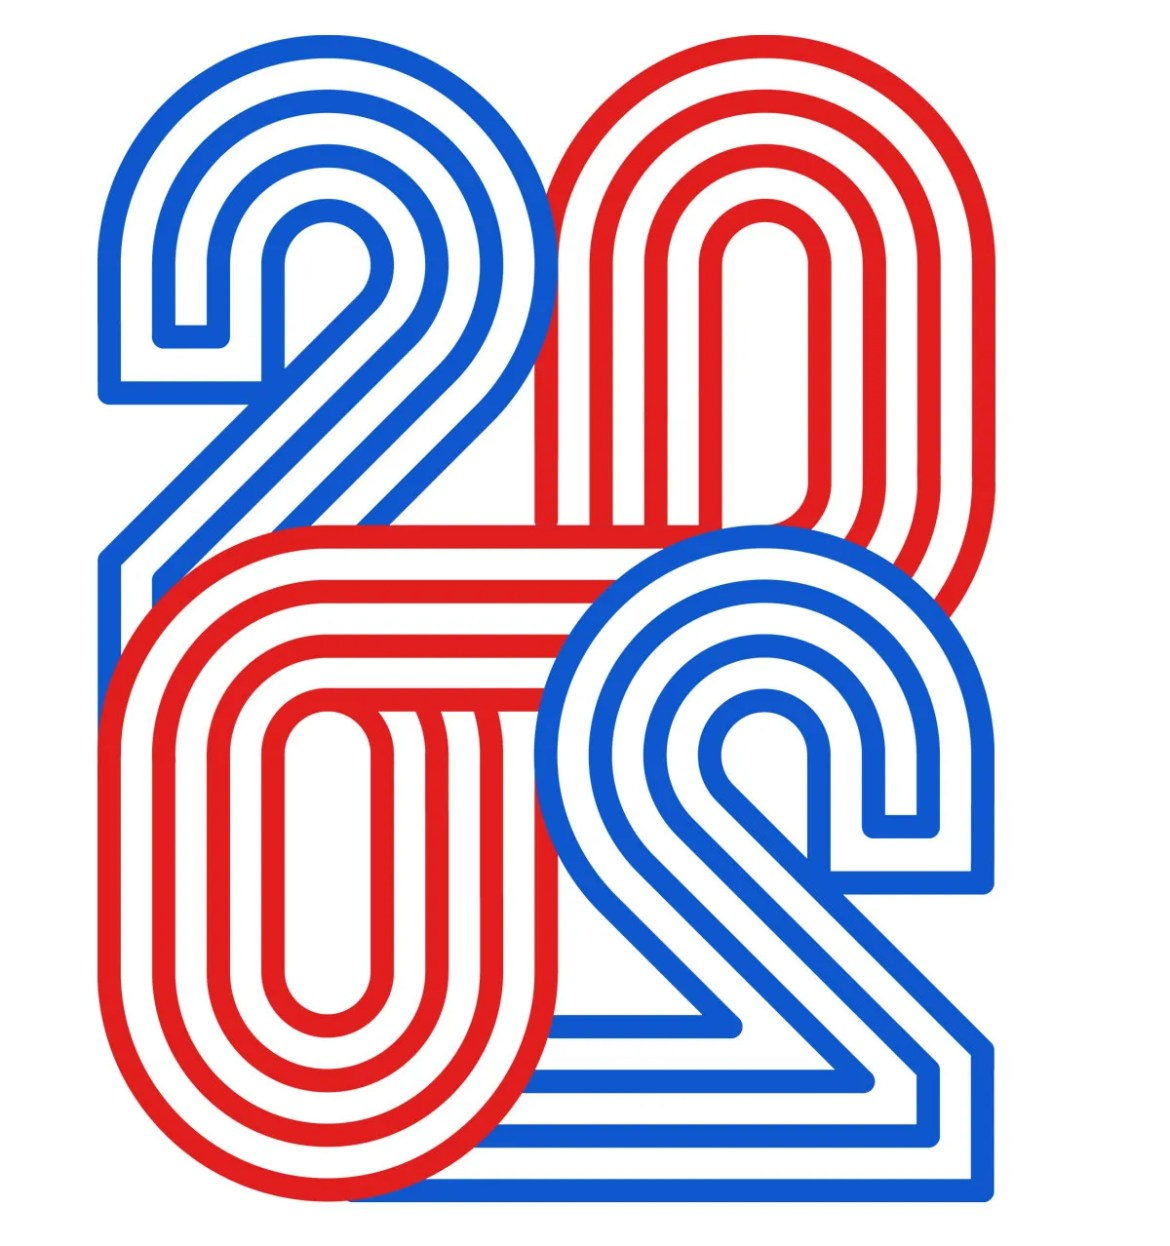 illustration of 2020 in red and blue